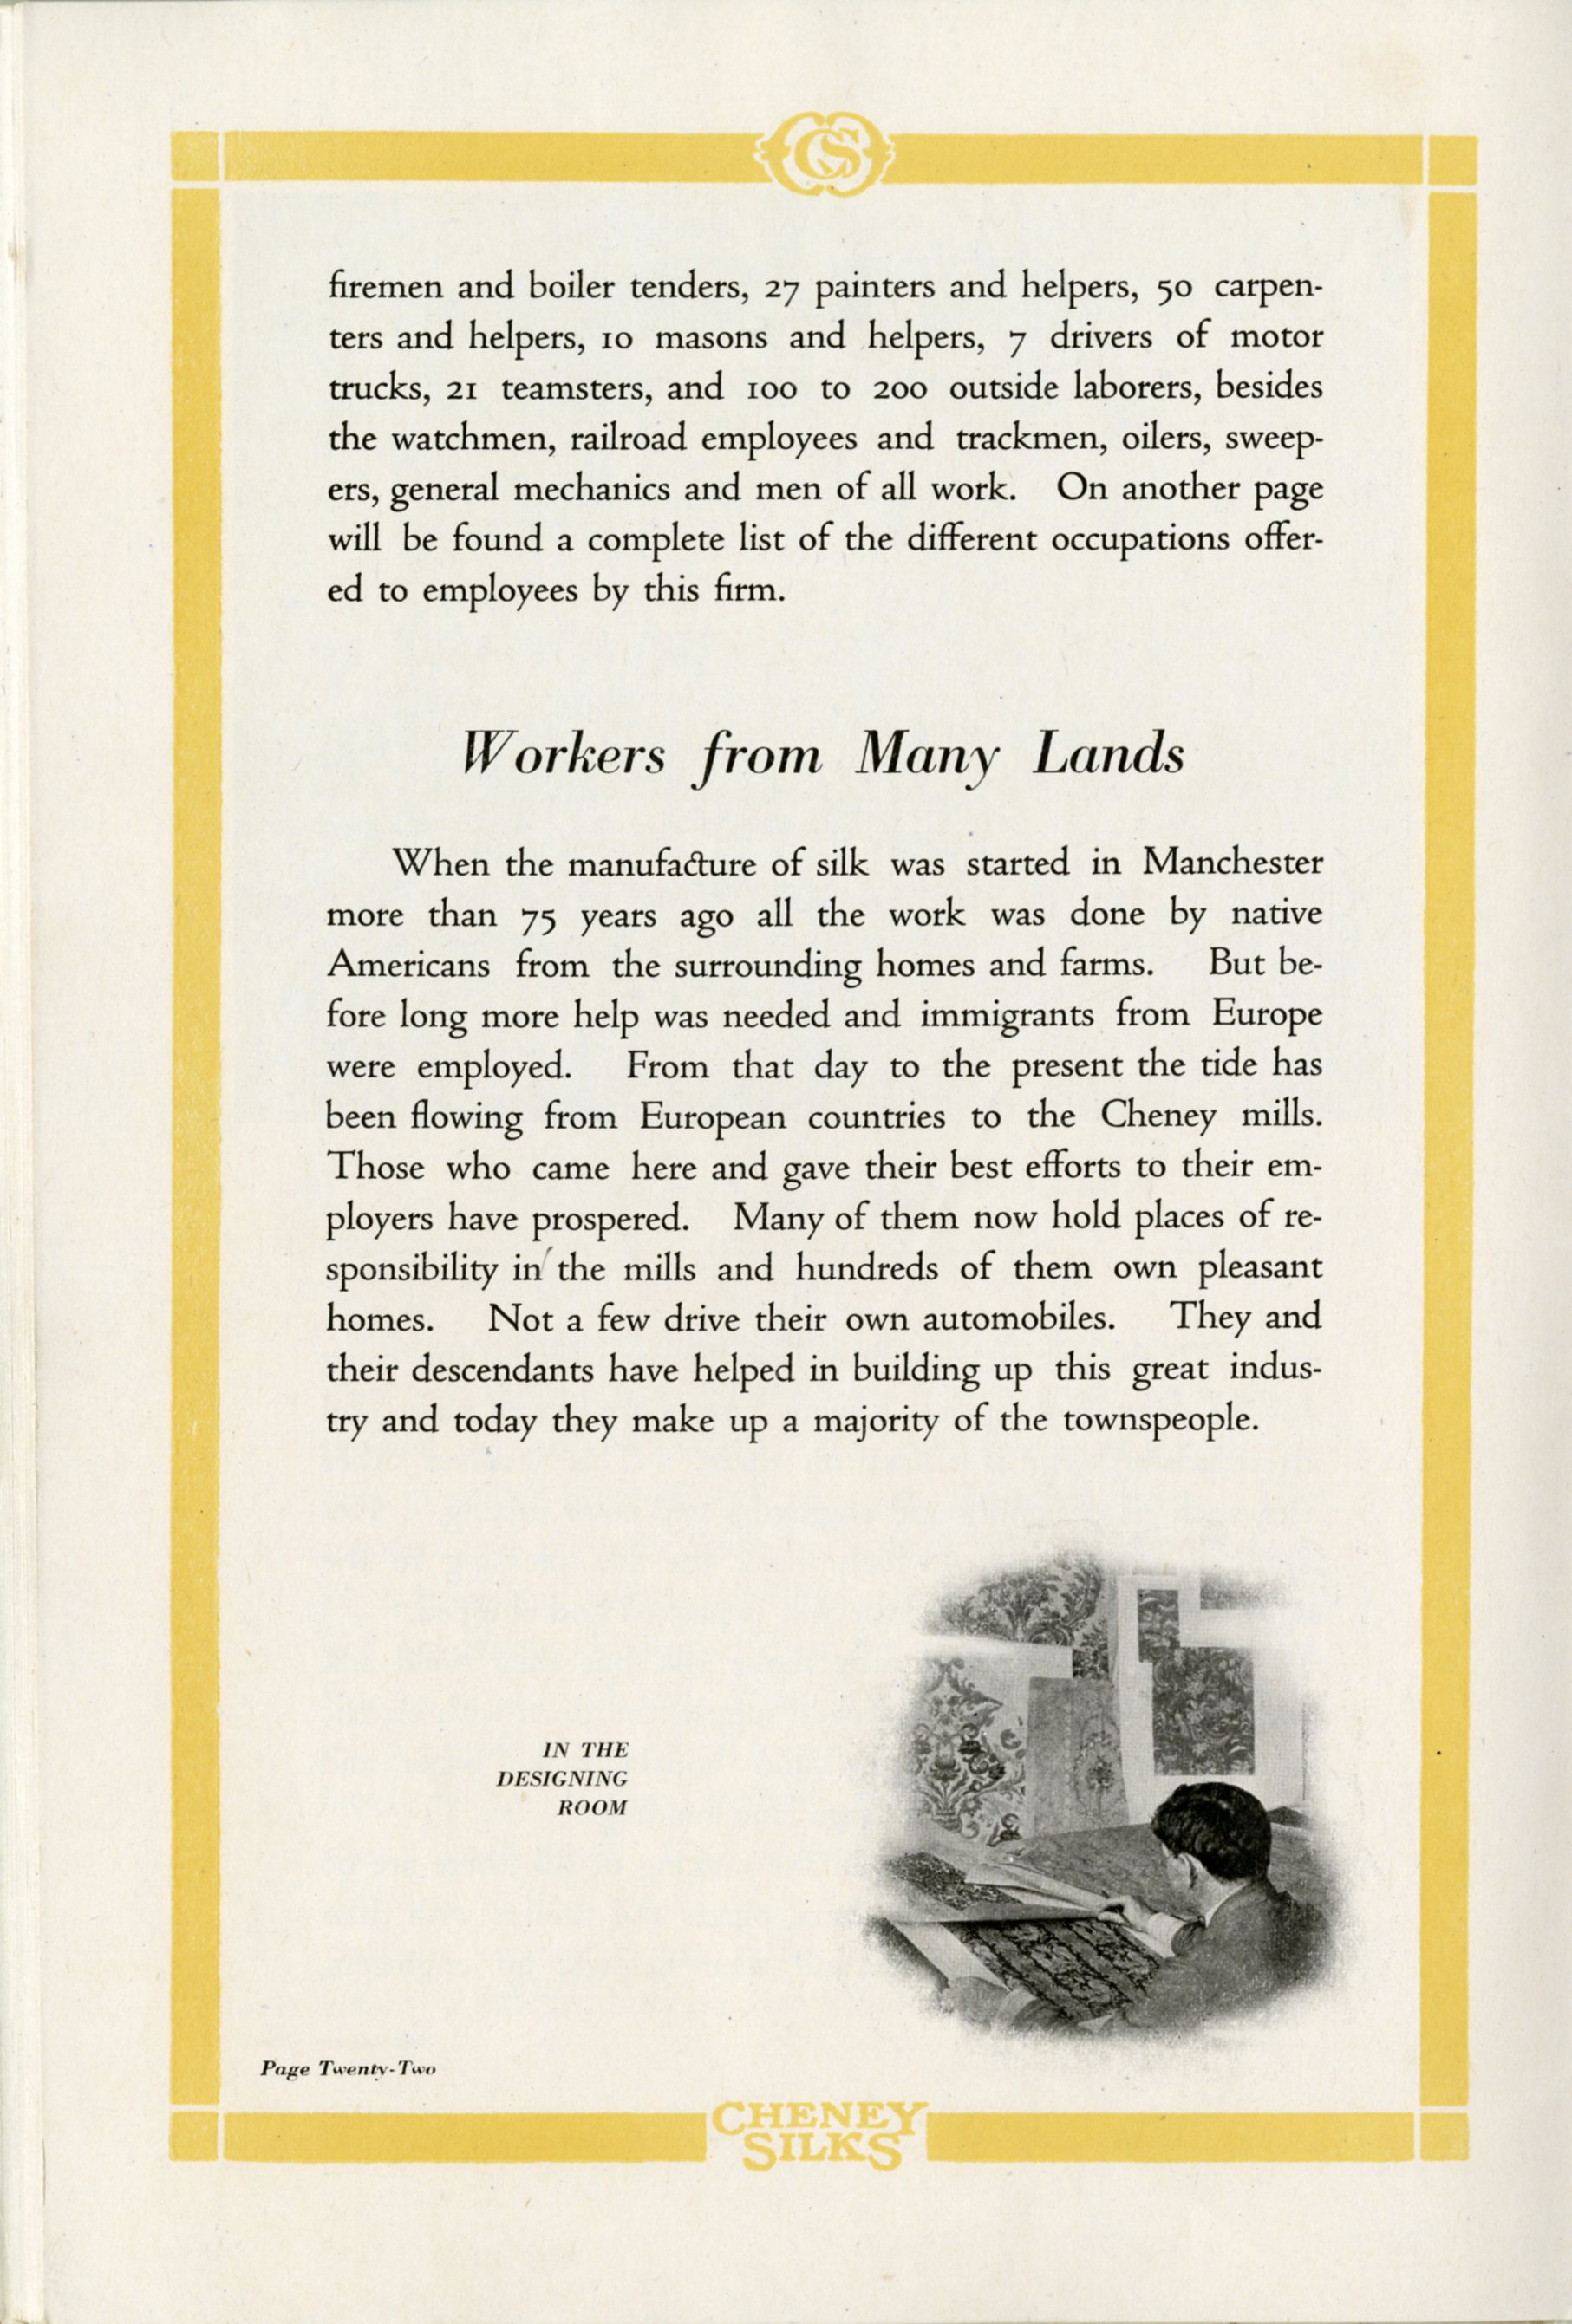 Page from The Miracle Workers, a worker recruitment publication from the Cheney Brothers Silk Manufacturing Company